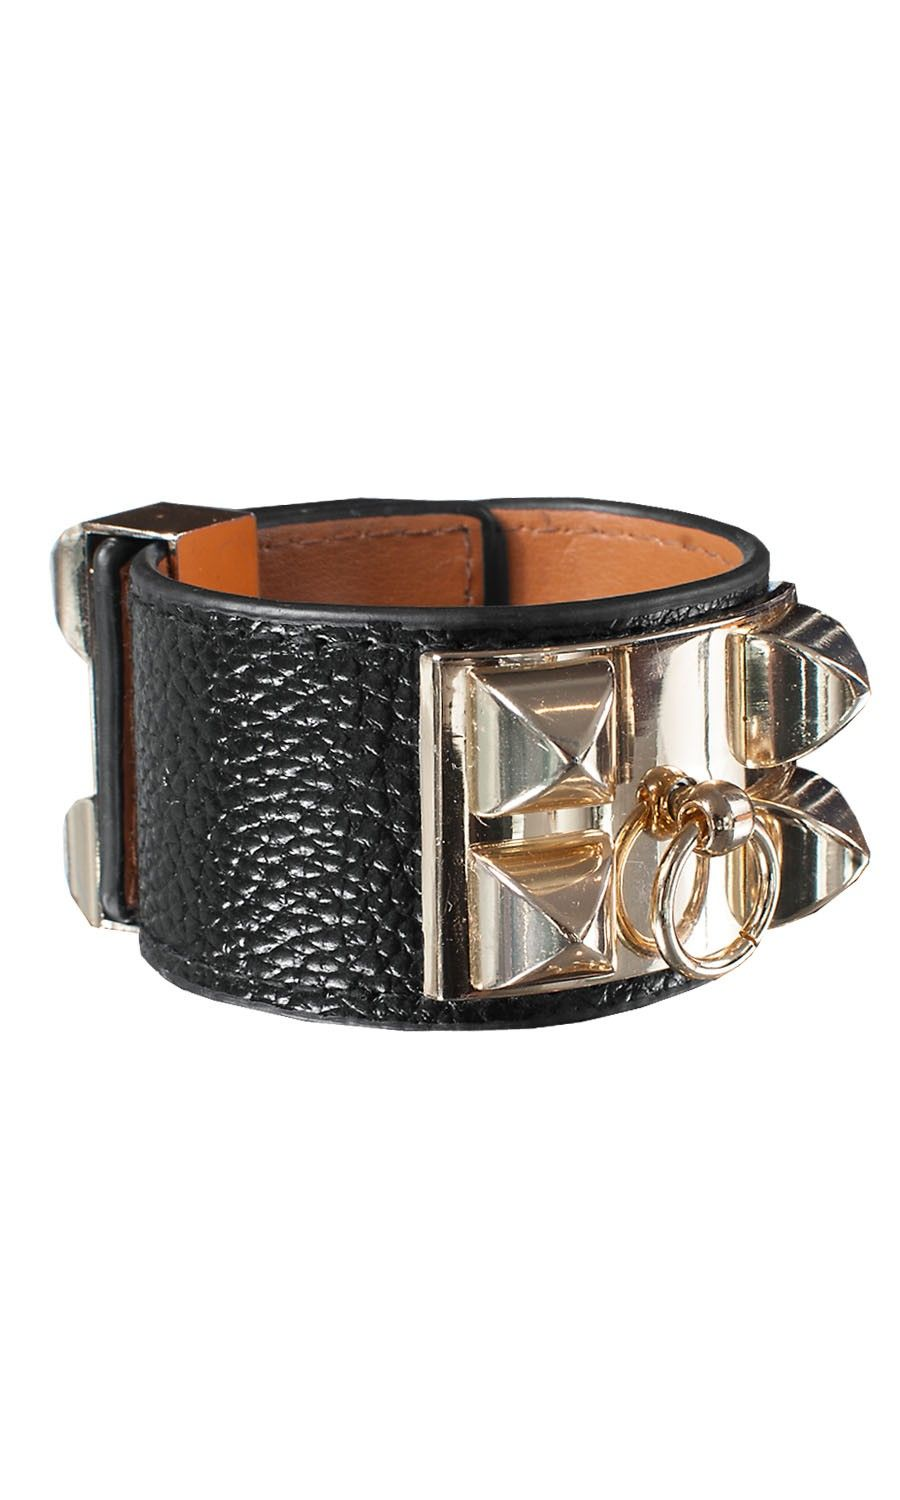 Big Gold Leather Black Bracelet from Ester Eleonora. Free shipping worldwide at www.isacouture.com #isacouture #estereleonora